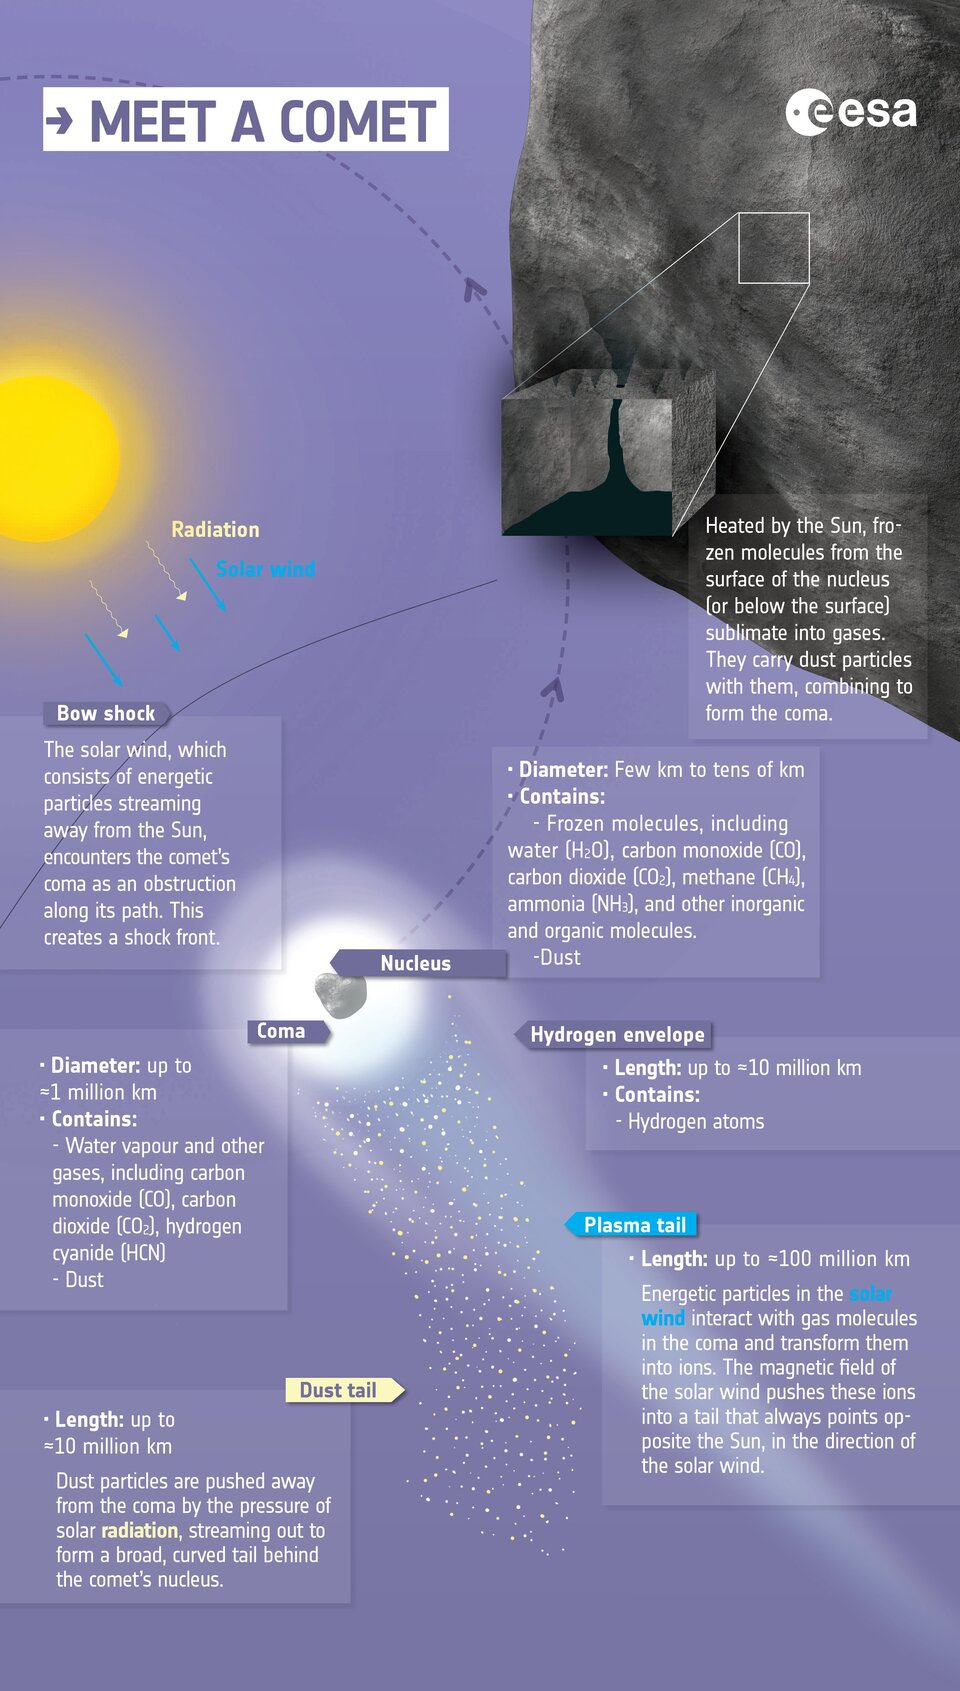 Anatomy of a comet: infographic